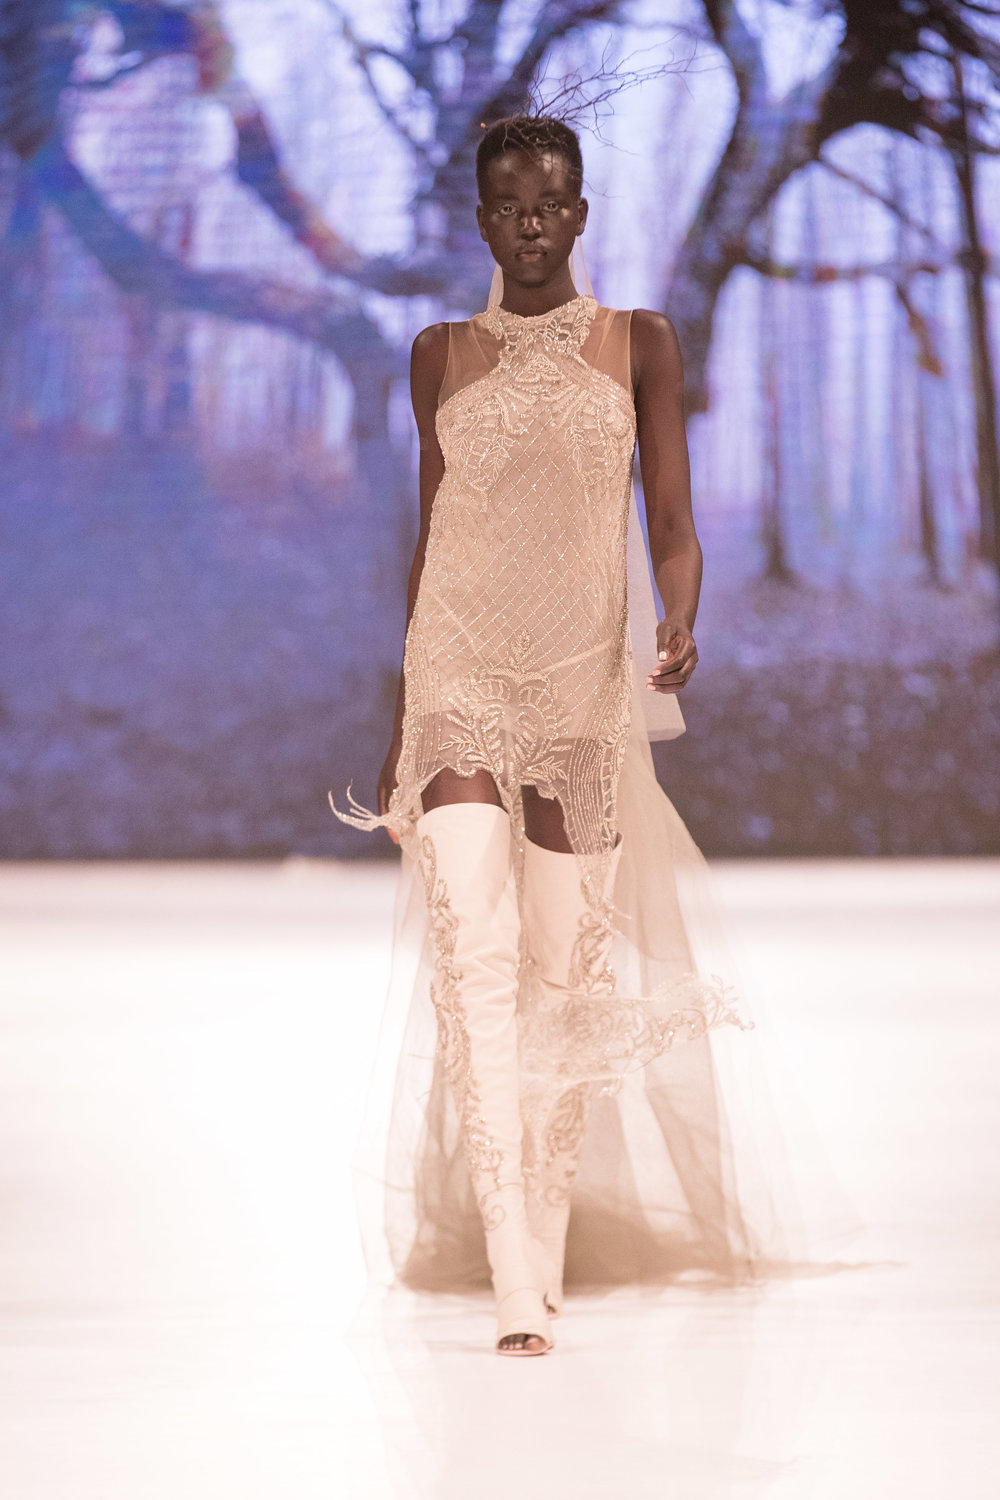 COUTURE_RUNWAY_Alexis George_MKOKER-136 copy 3.jpg